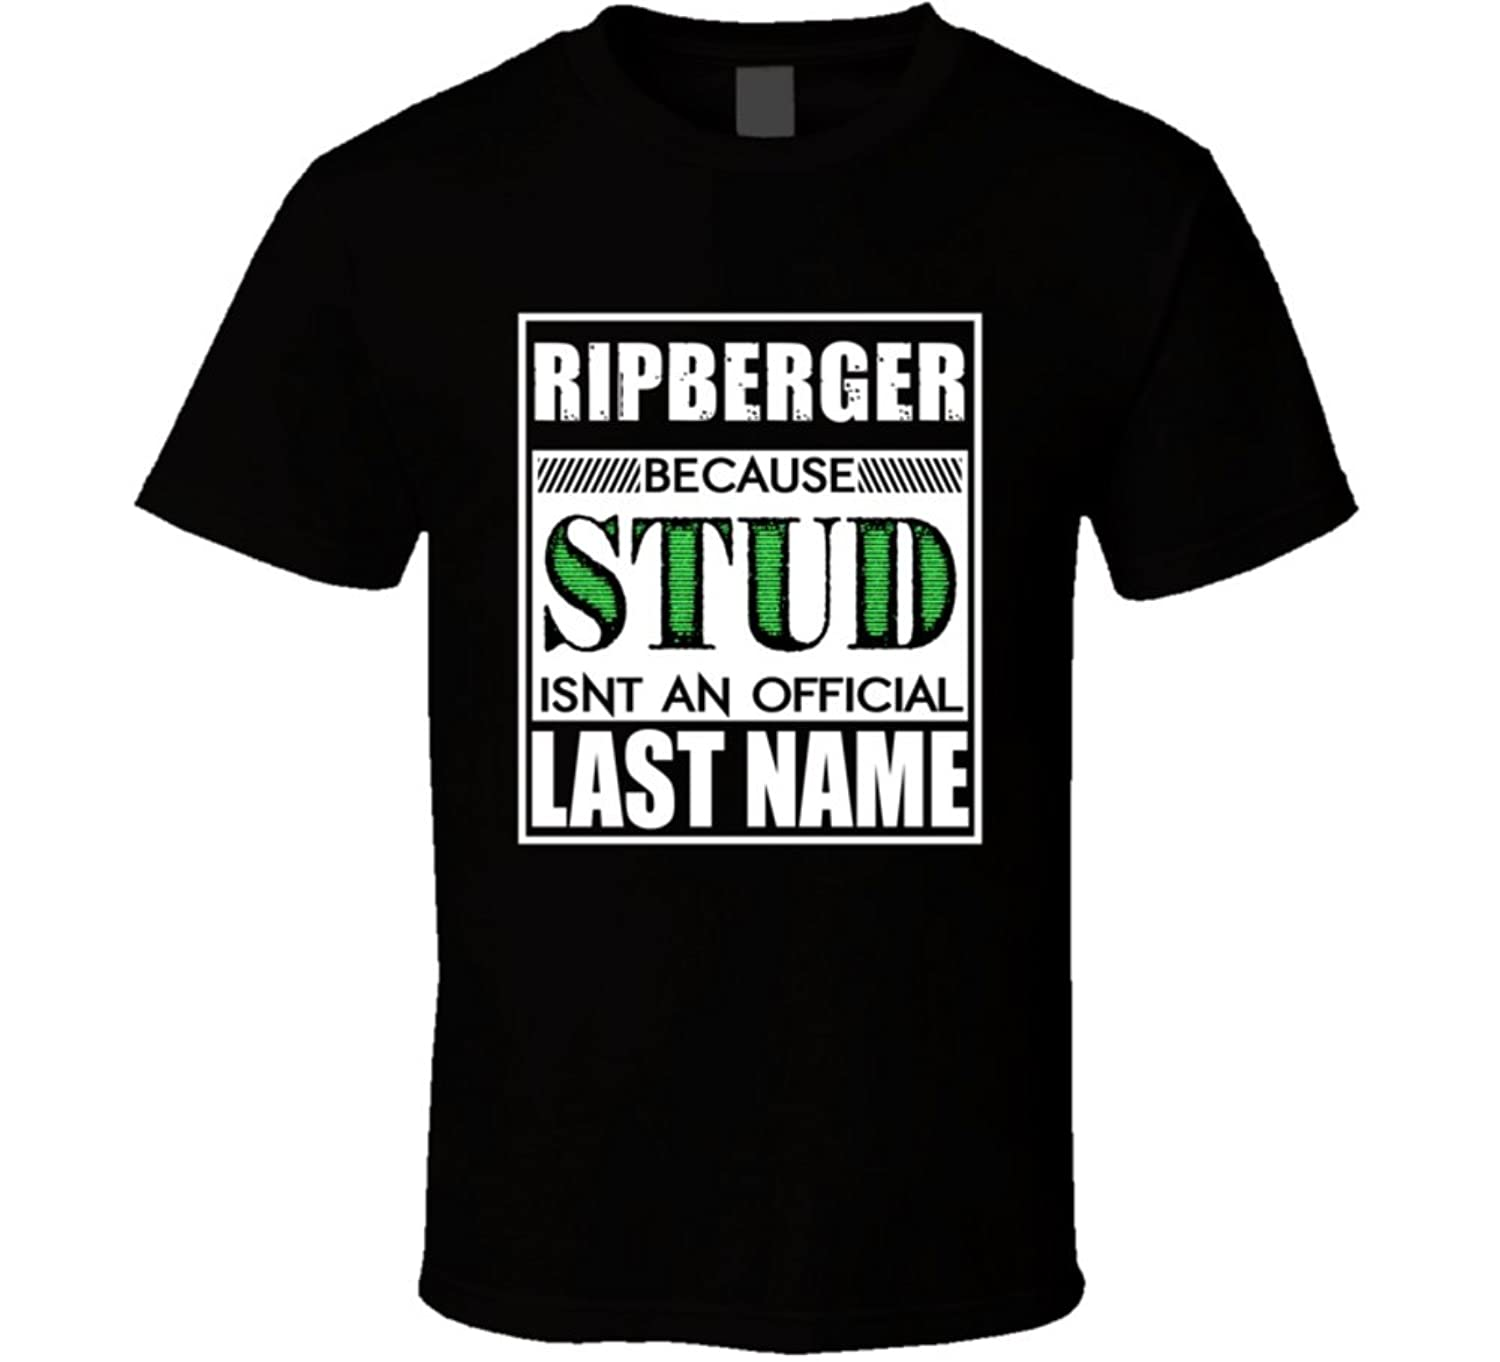 Ripberger Because Stud official Last Name Funny T Shirt